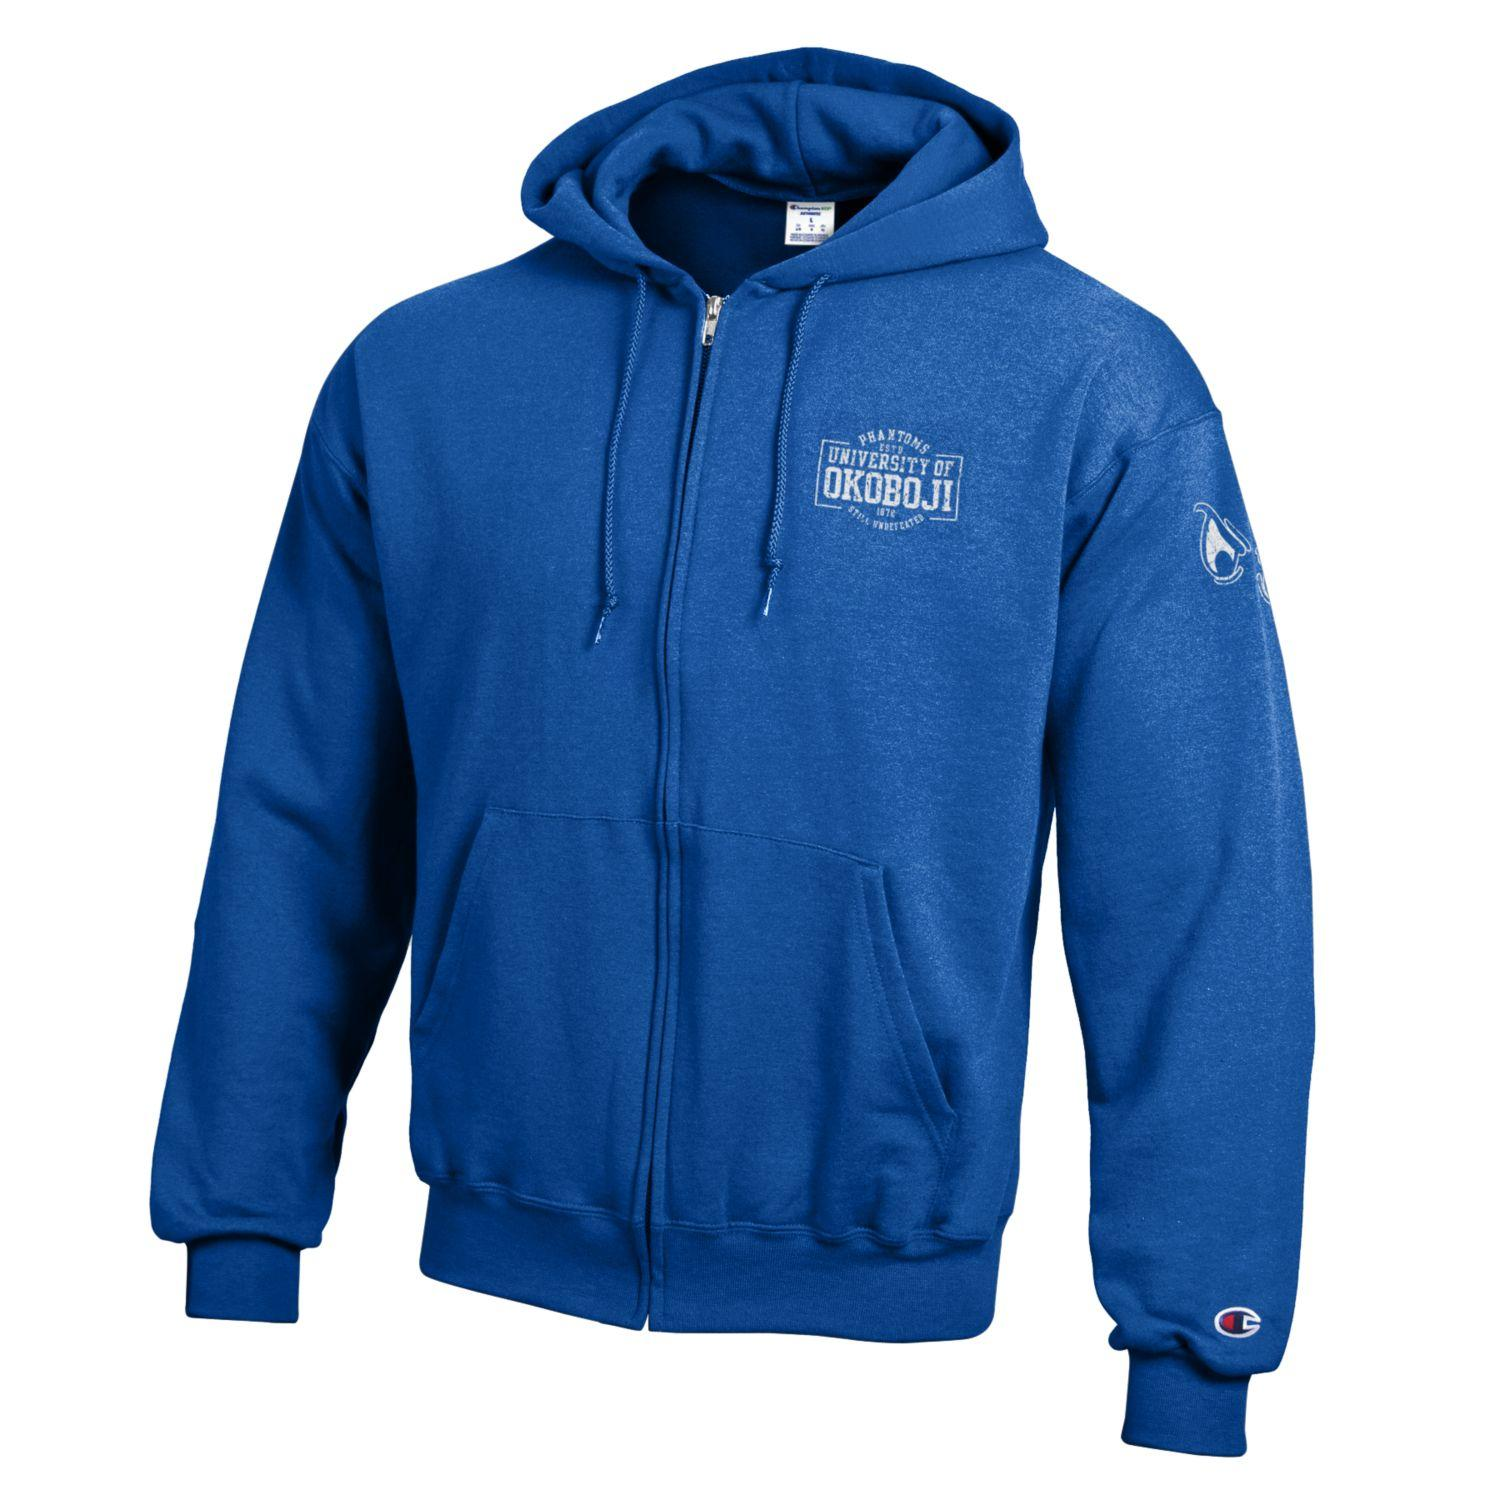 CHAMPION OKOBOJI ECO® POWERBLEND® FULL ZIP - Victory Blue